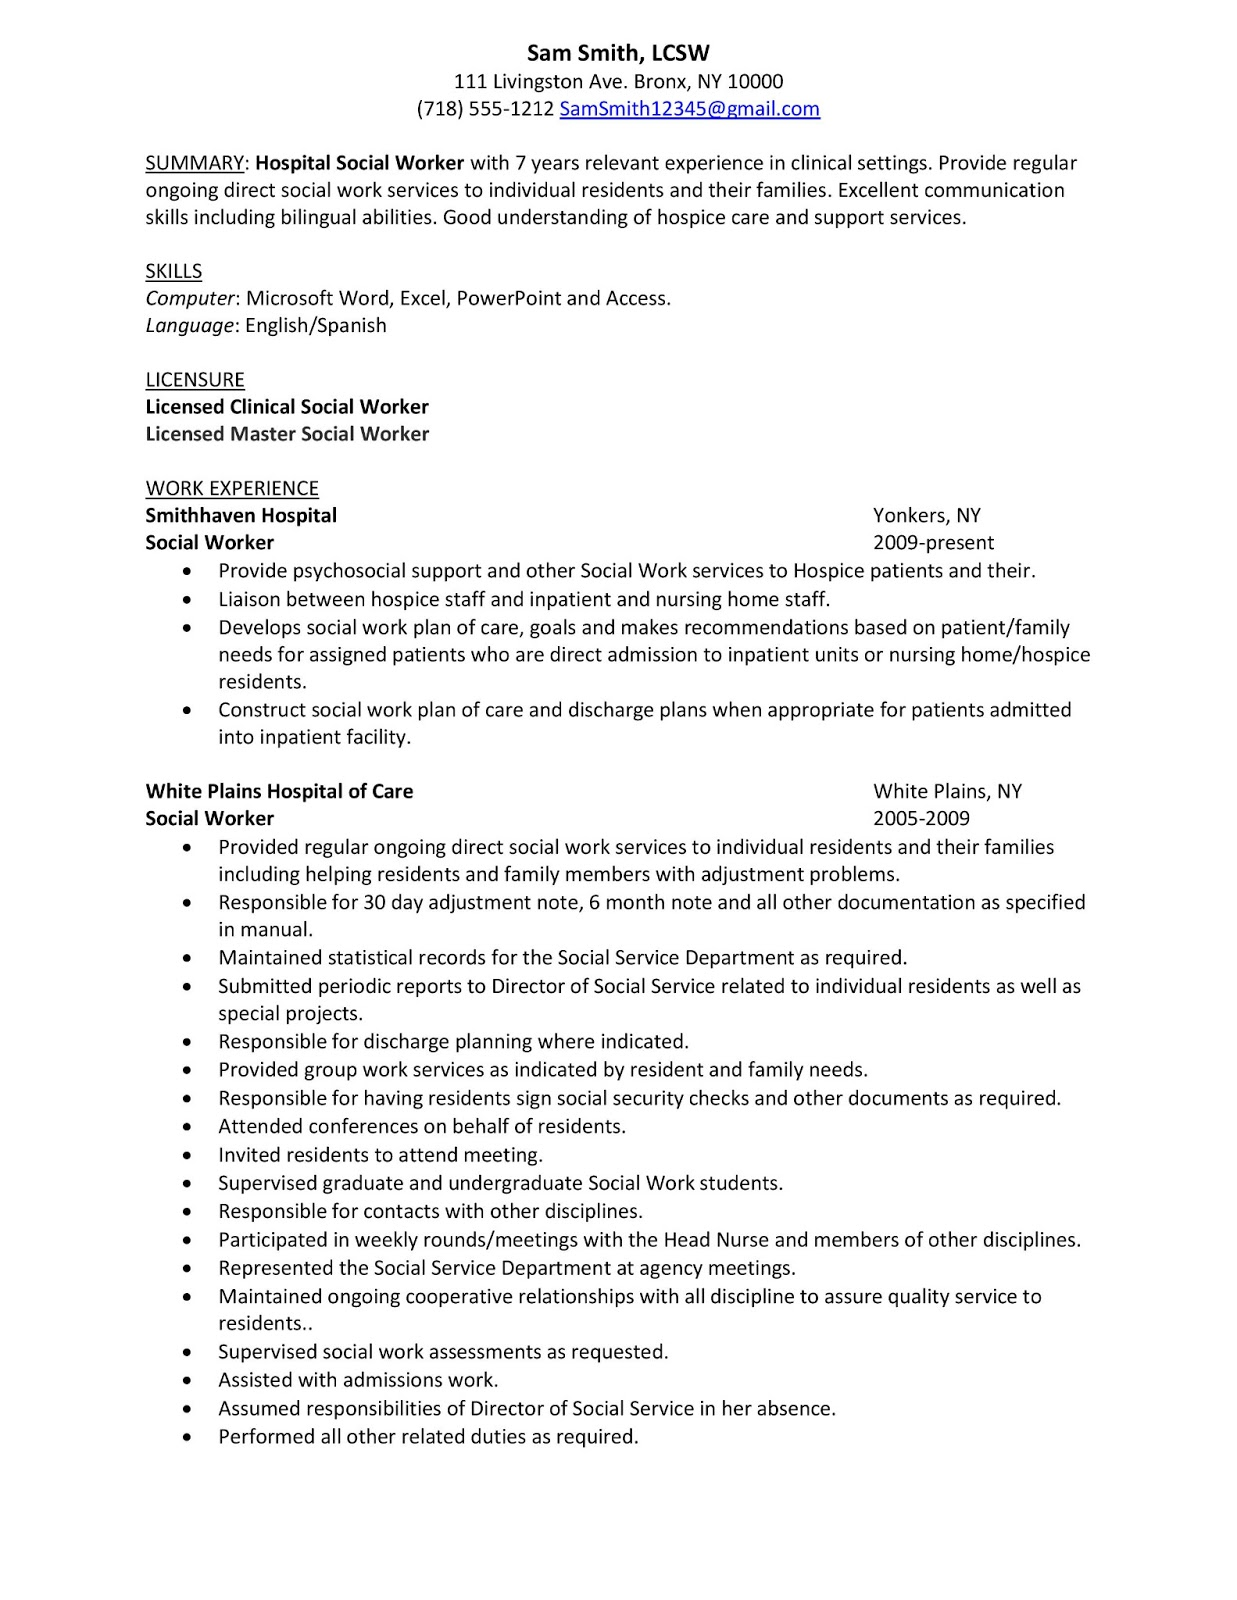 resume objective statements for social work